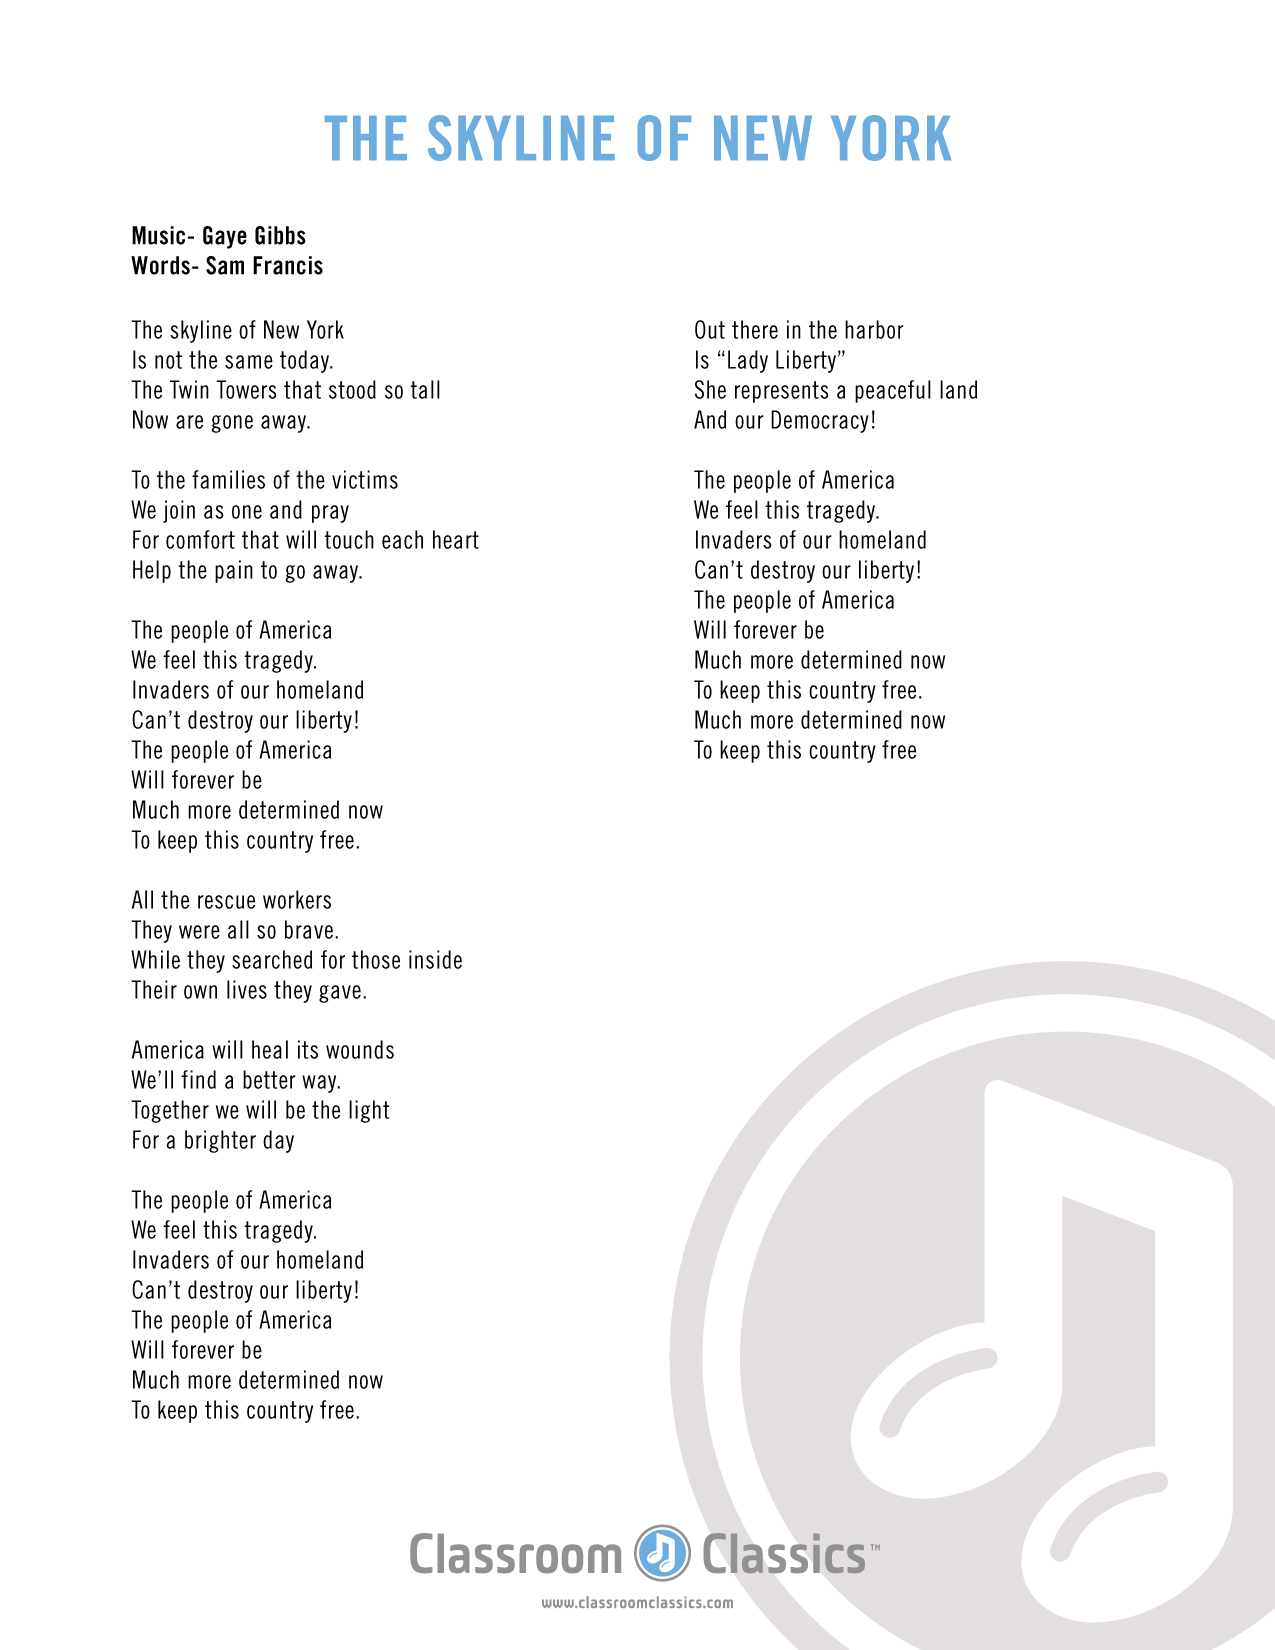 Dating in new york lyrics